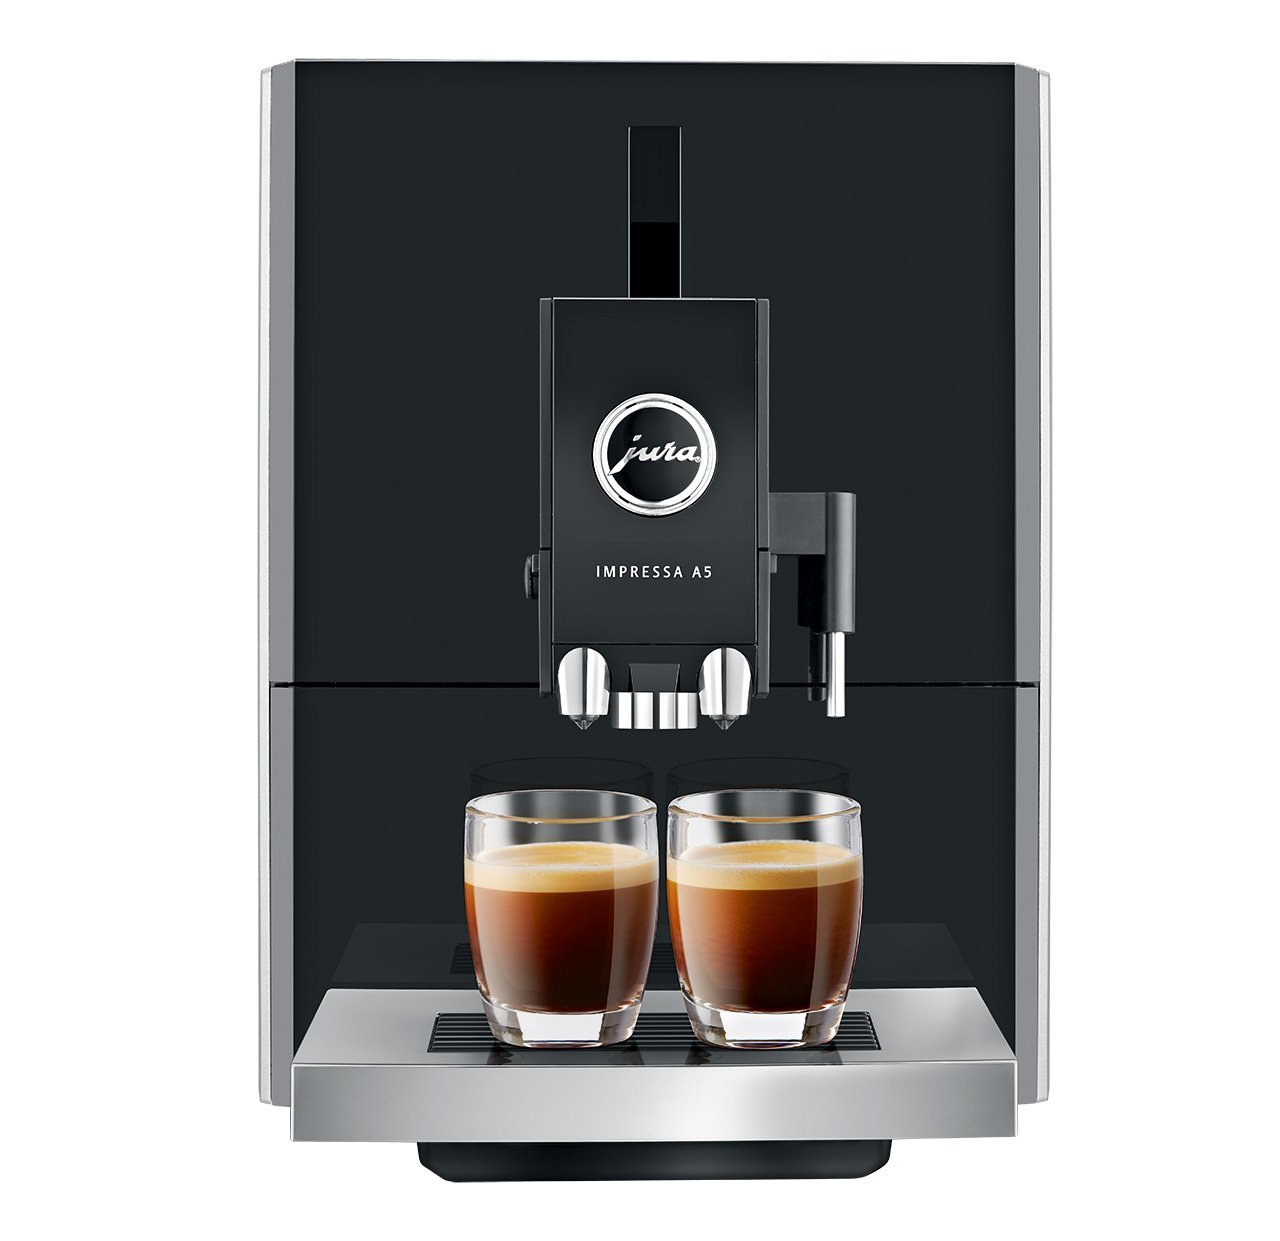 kaffeevollautomat testsieger 2015 2016 saeco delonghi bosch und jura. Black Bedroom Furniture Sets. Home Design Ideas